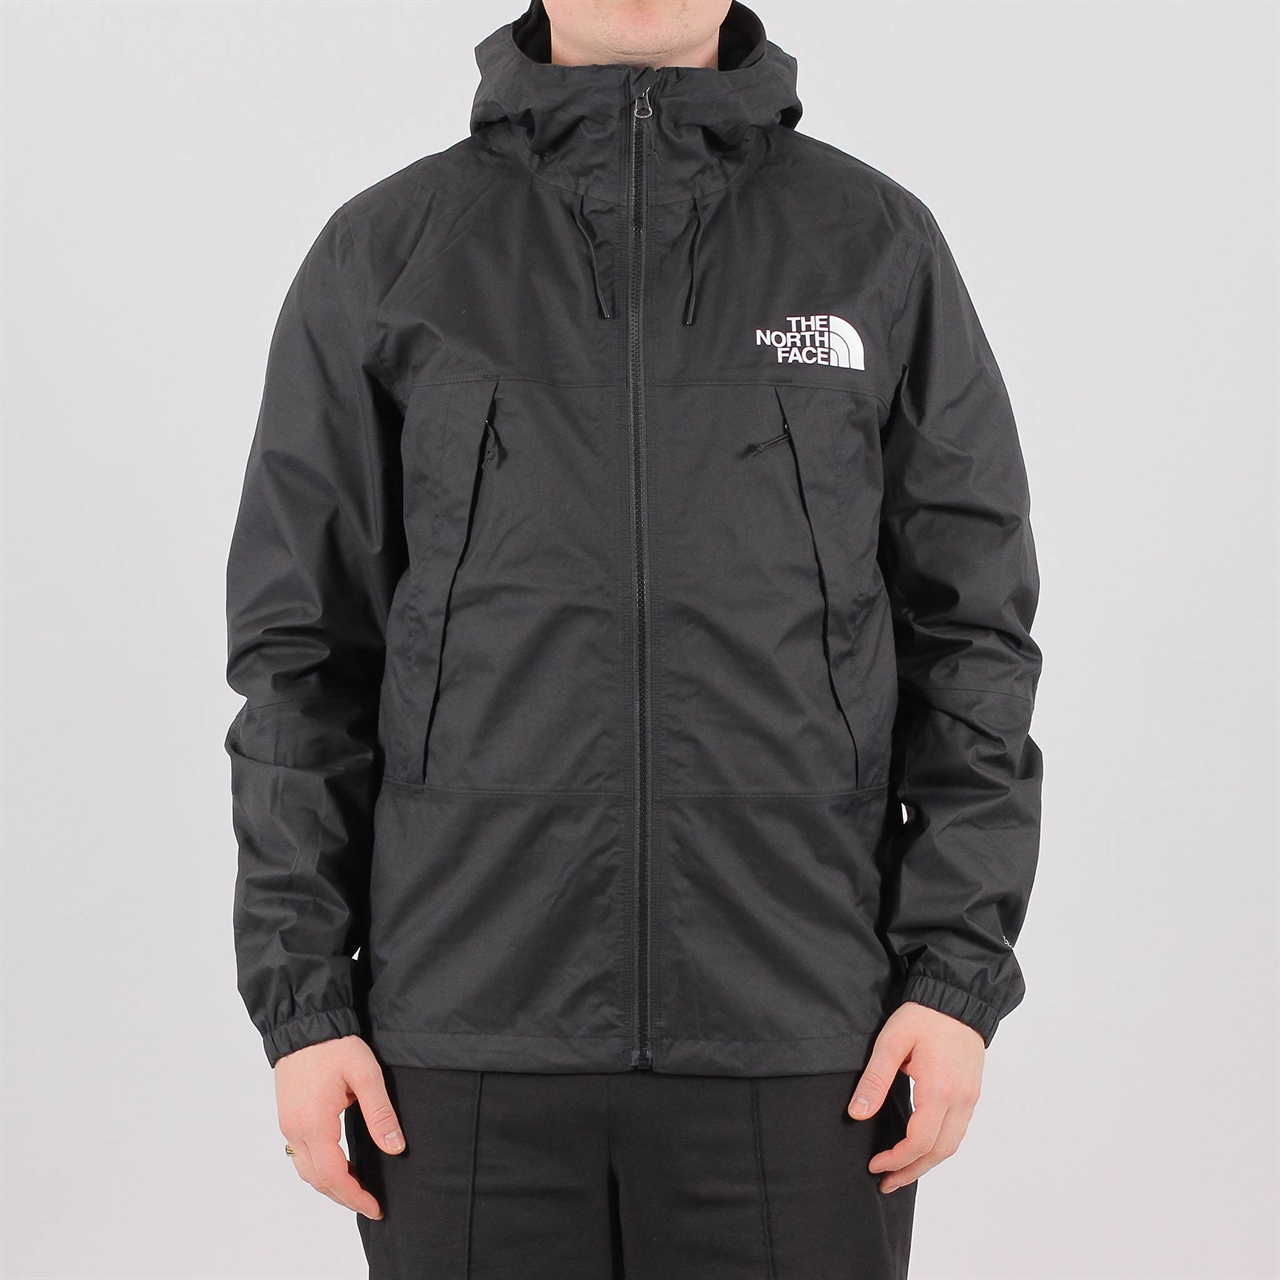 bae995841 Shelta - The North Face 1990 Mountain Quest Jacket Black (T92S51NM9)